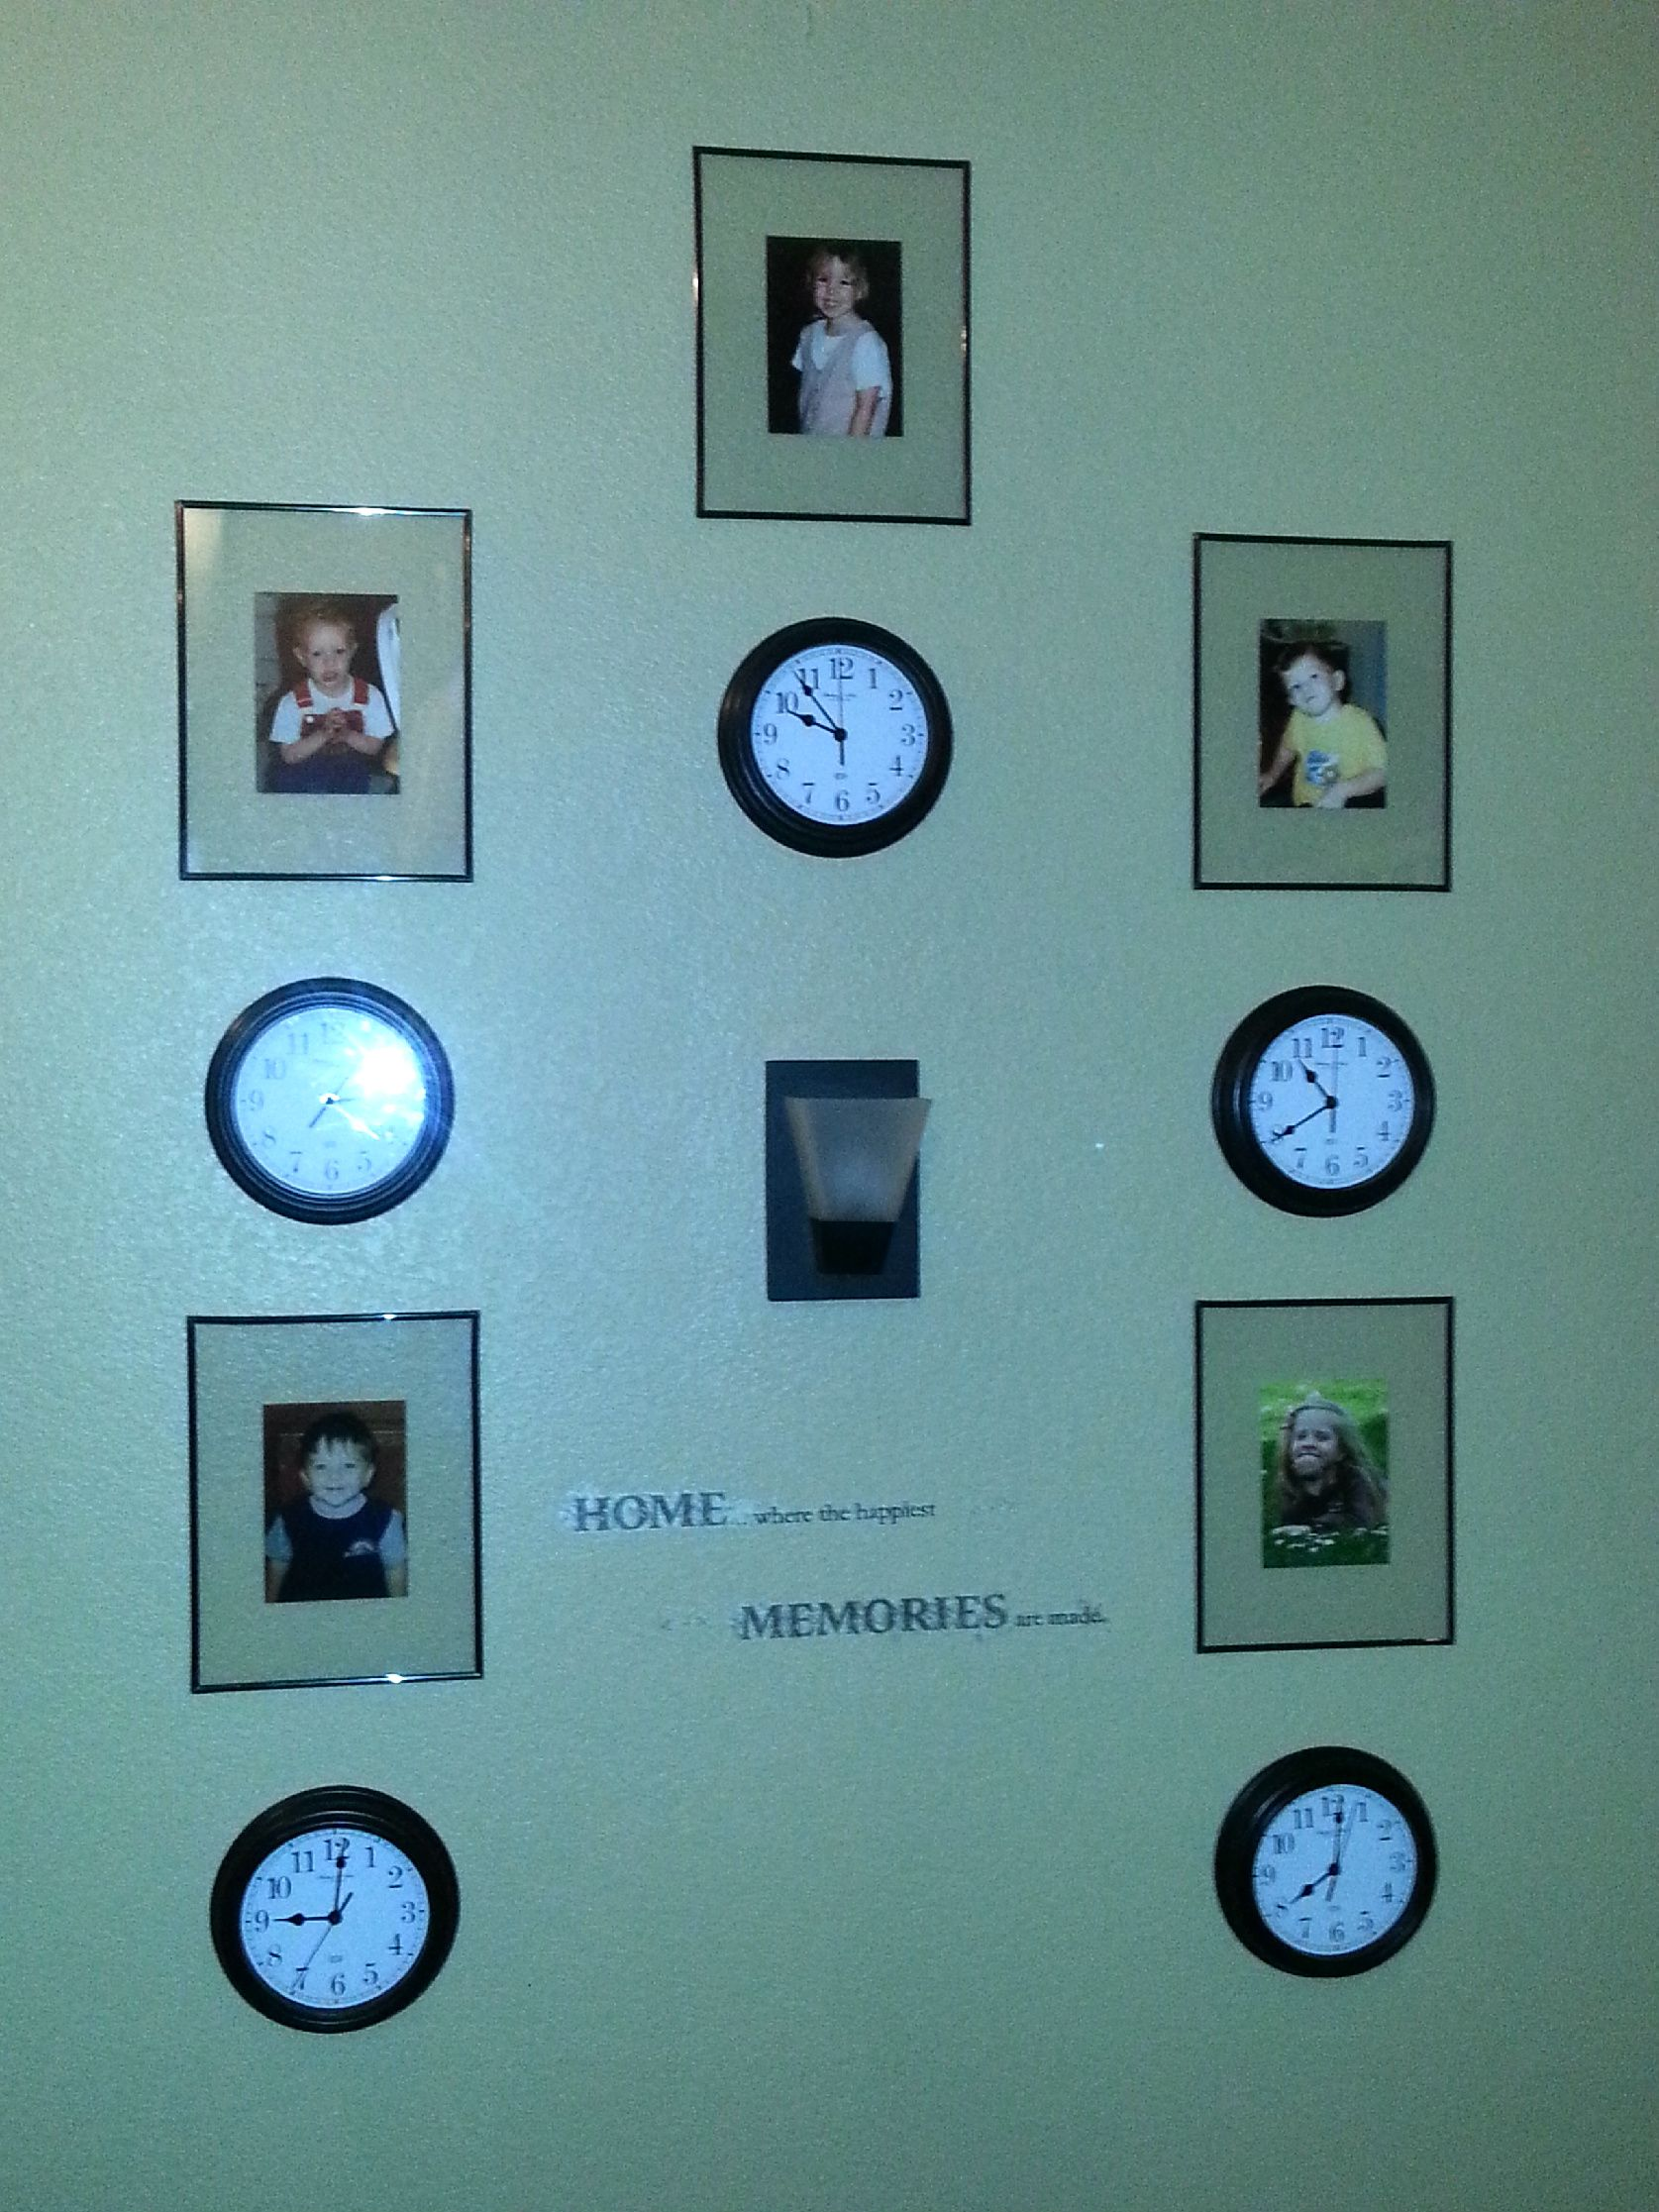 Commemorate the times your kids were born by combining clocks set to their special time with their pictures...can be adjusted to any space. So cute!!!